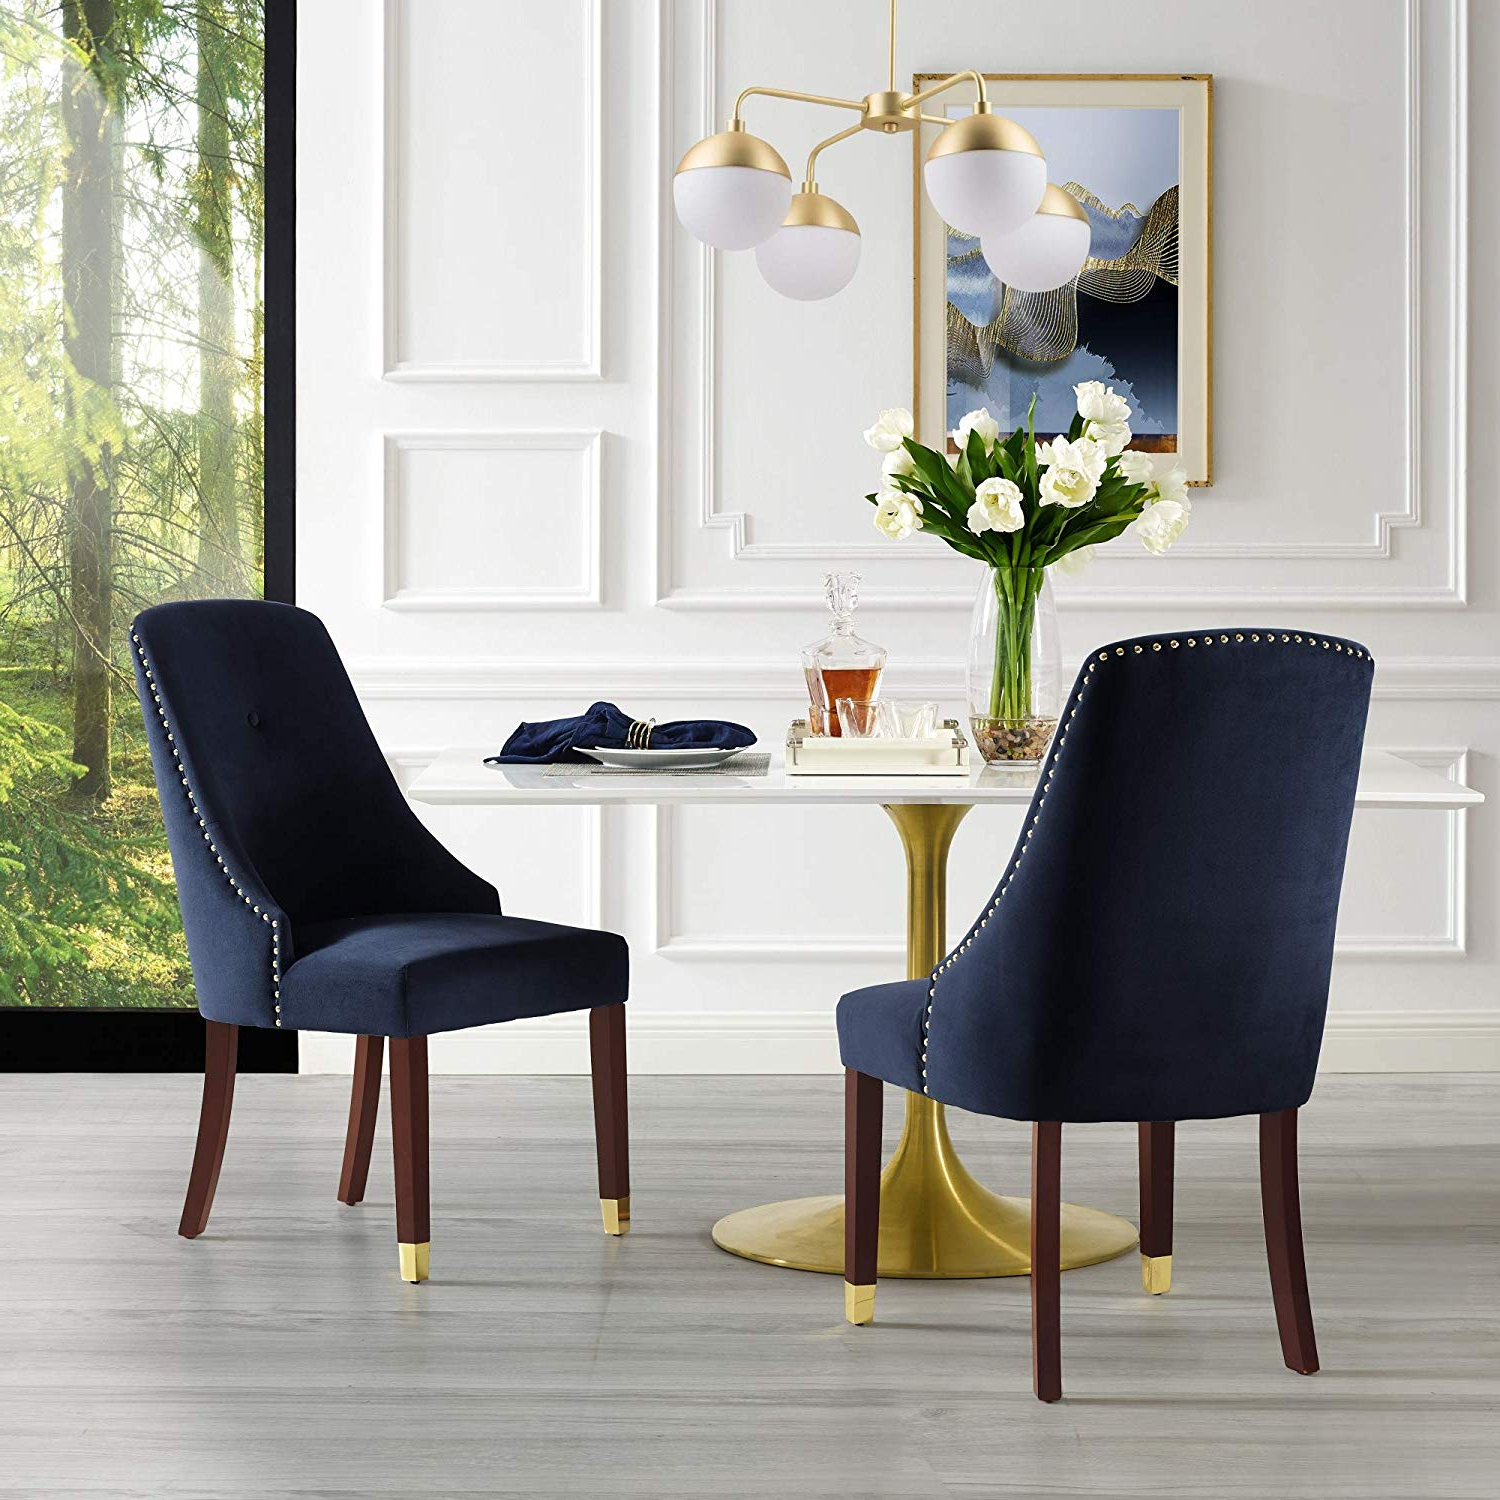 Aria 5 Piece Dining Sets Intended For 2017 Amazon – Inspiredhome Navy Velvet Dining Chair – Design: Aria (View 1 of 20)